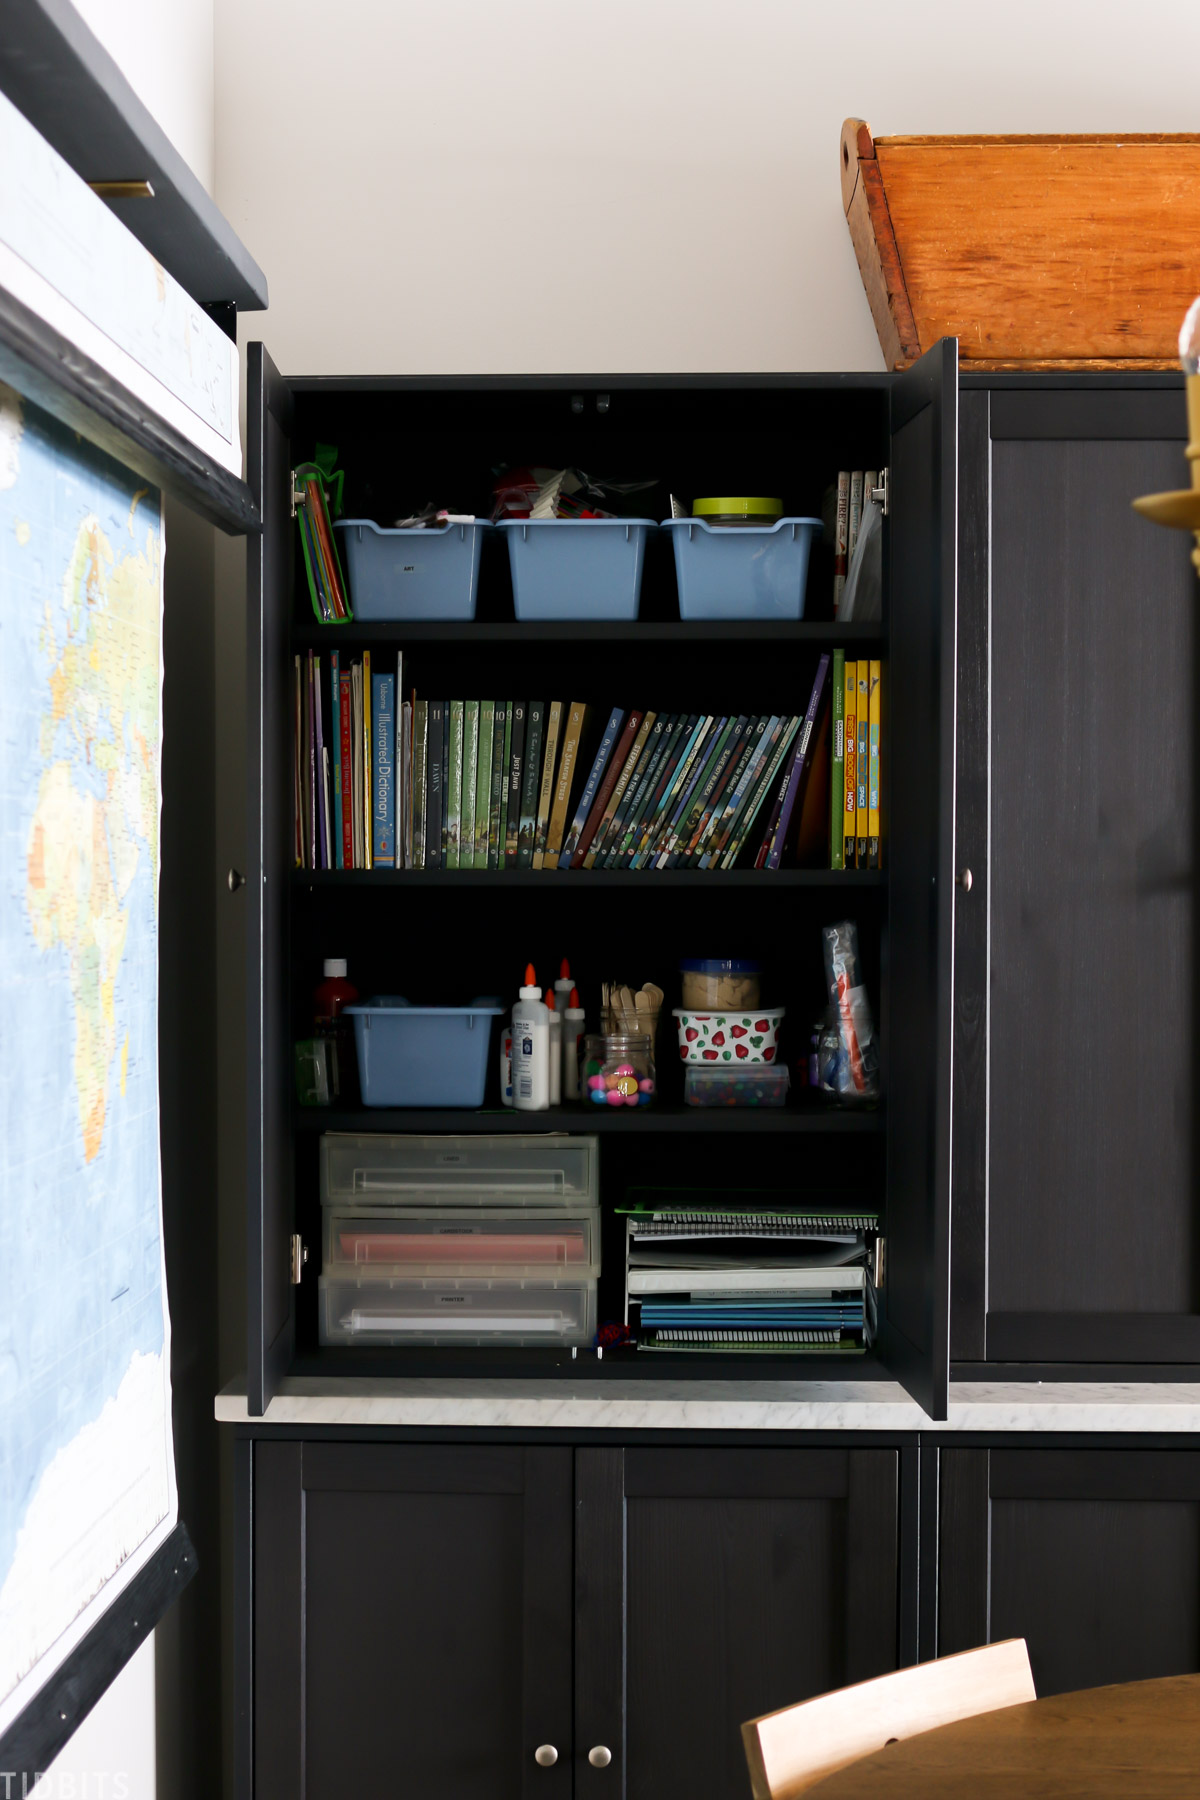 Havsta storage cabinets with school supplies inside one of the cabinets